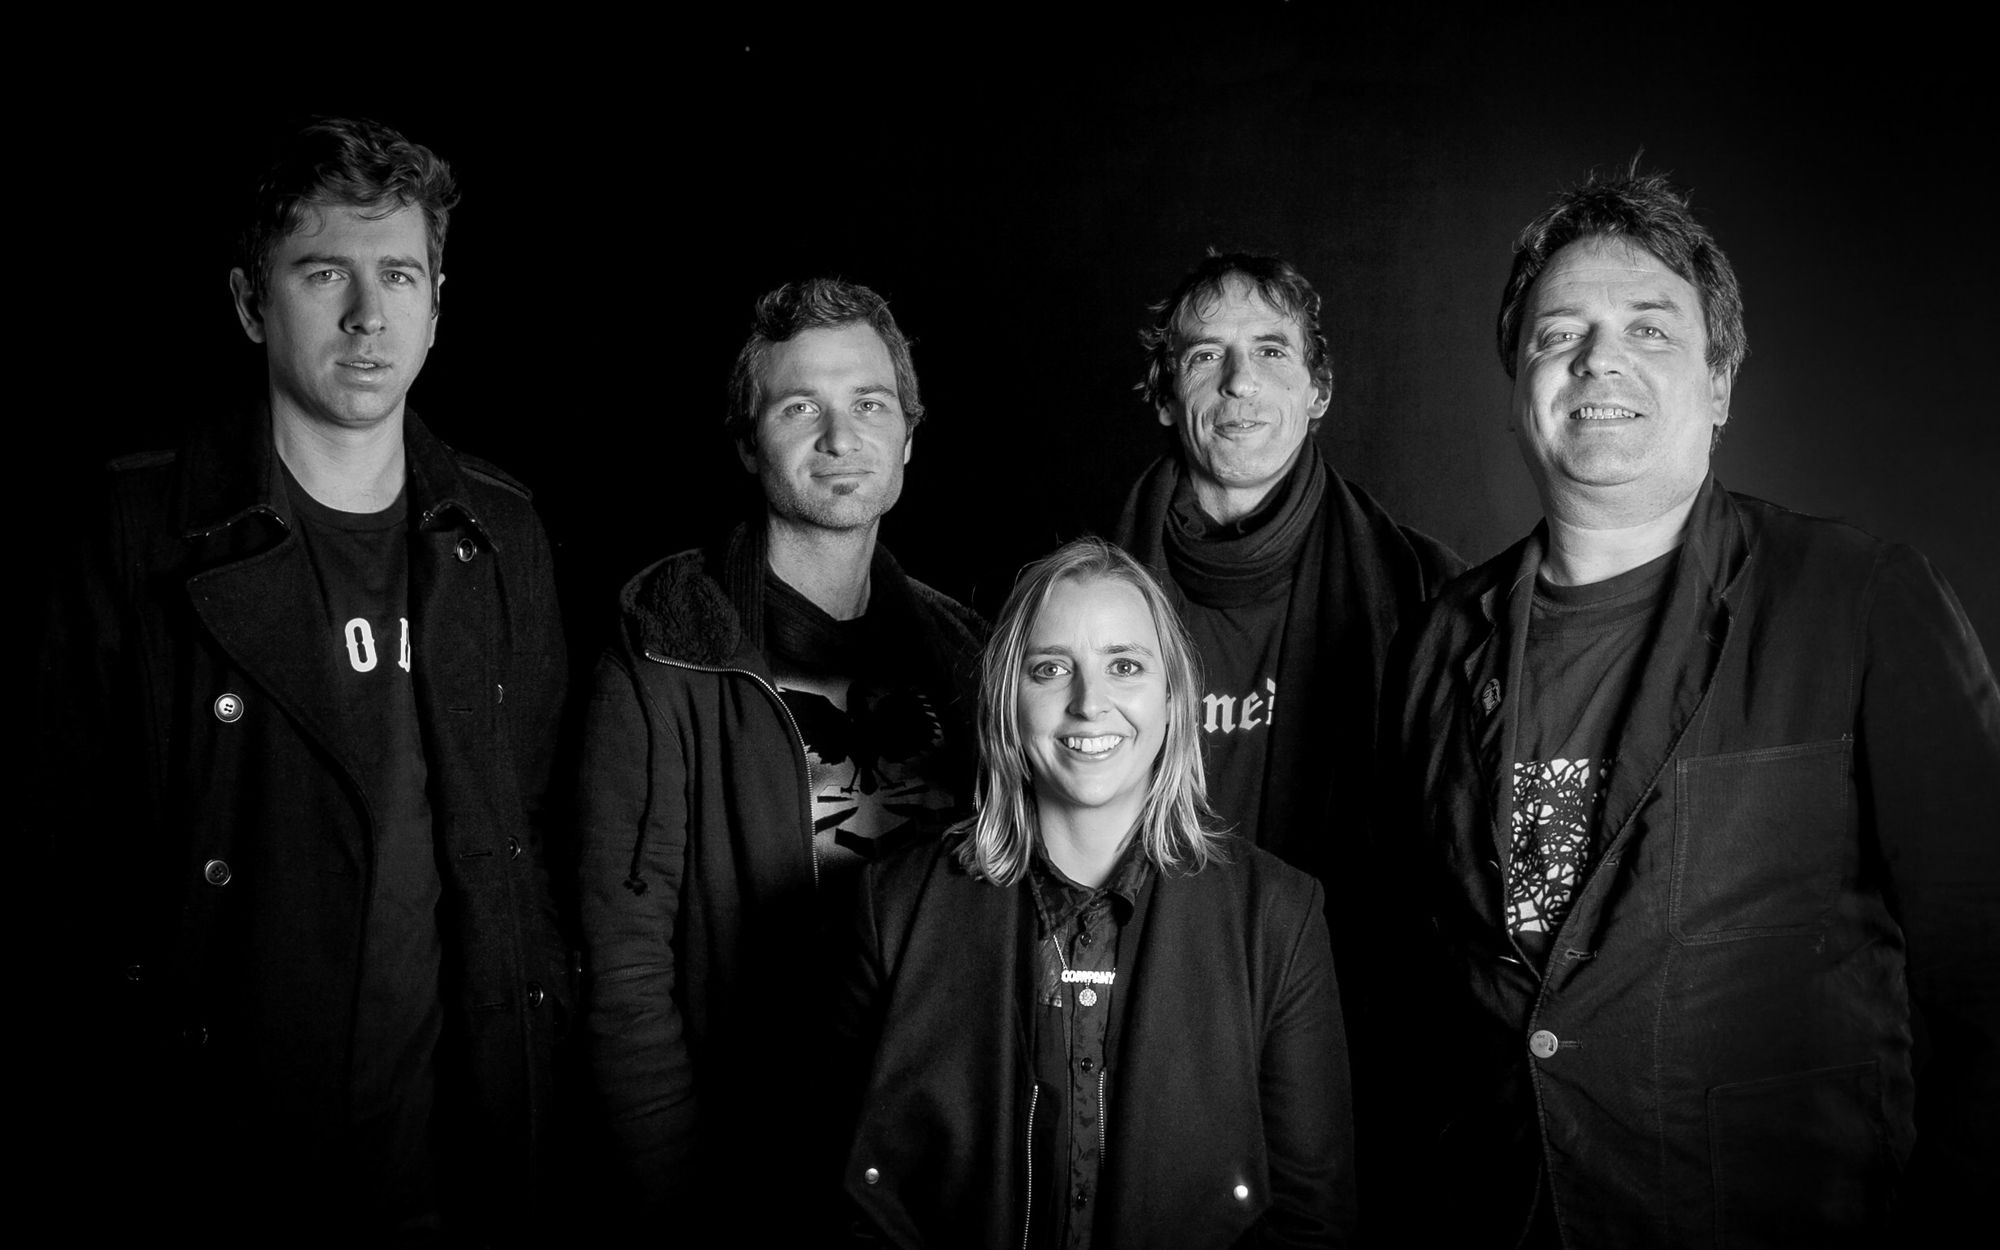 The Chills - European tour! Interview! Sic!